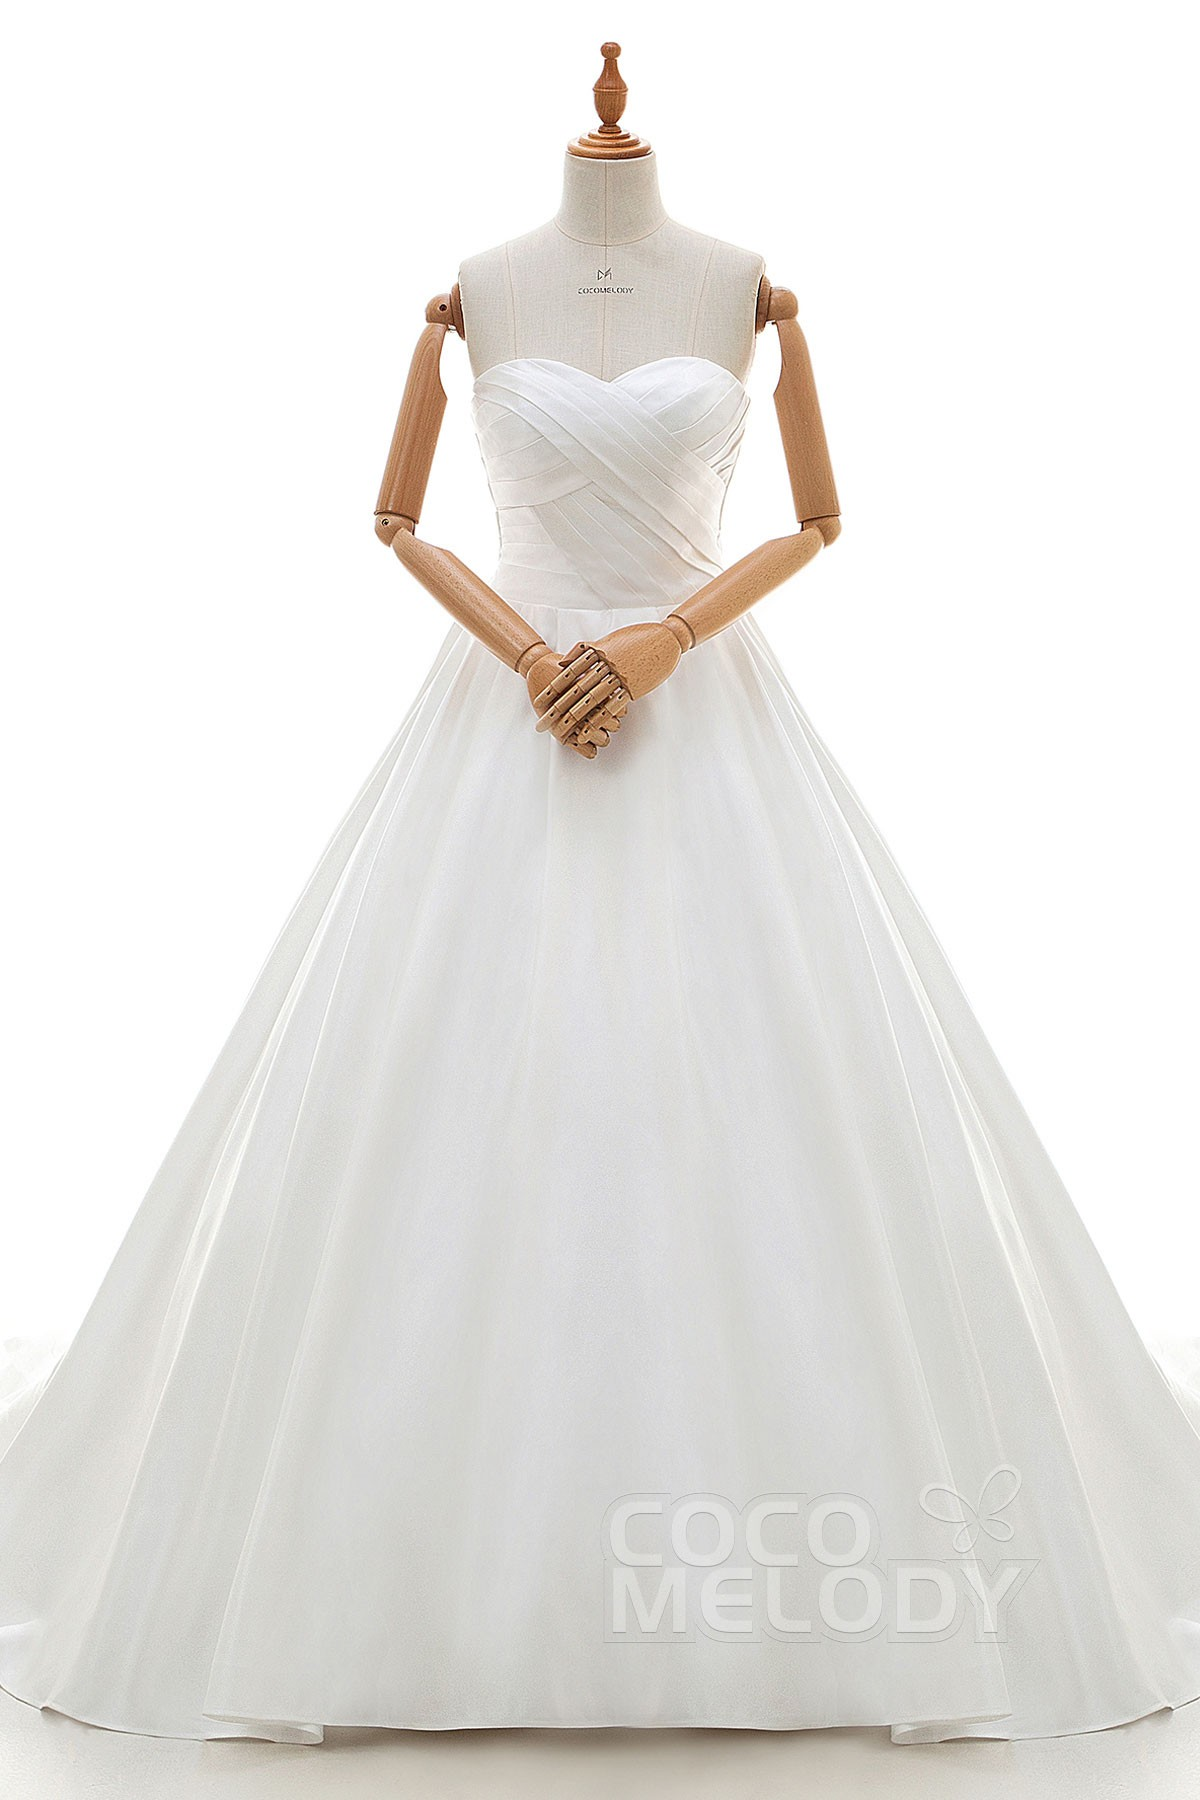 Fancy A-Line Sweetheart Natural Chapel Train Satin Ivory Sleeveless Zipper With Buttons Wedding Dress with Bowknot and Pleating ld4191